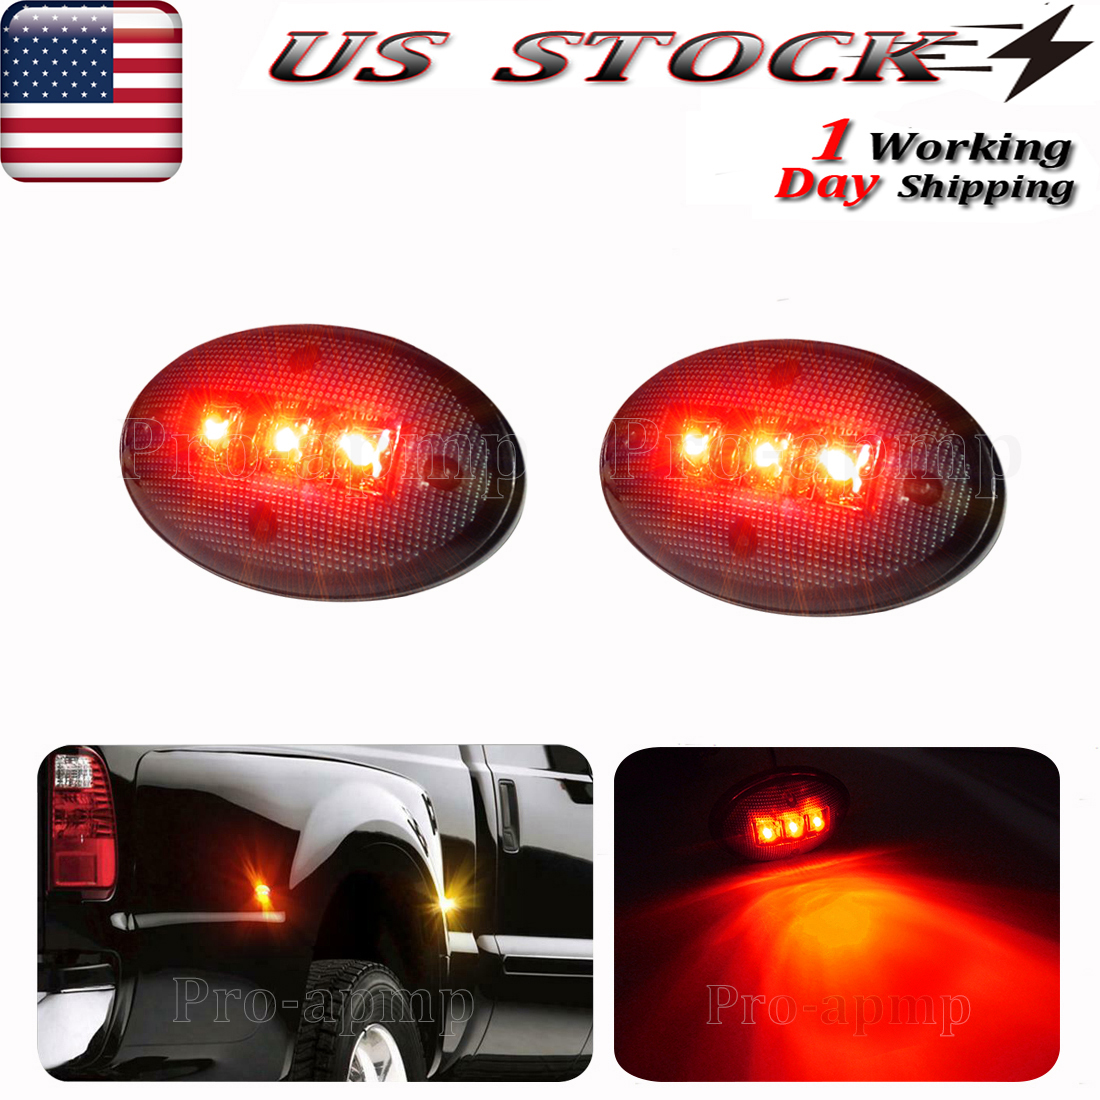 For 4 Pcs Smoked Dually Model 1999-2010 Ford F250 F350 F450 Superduty Fender LED Marker Lights